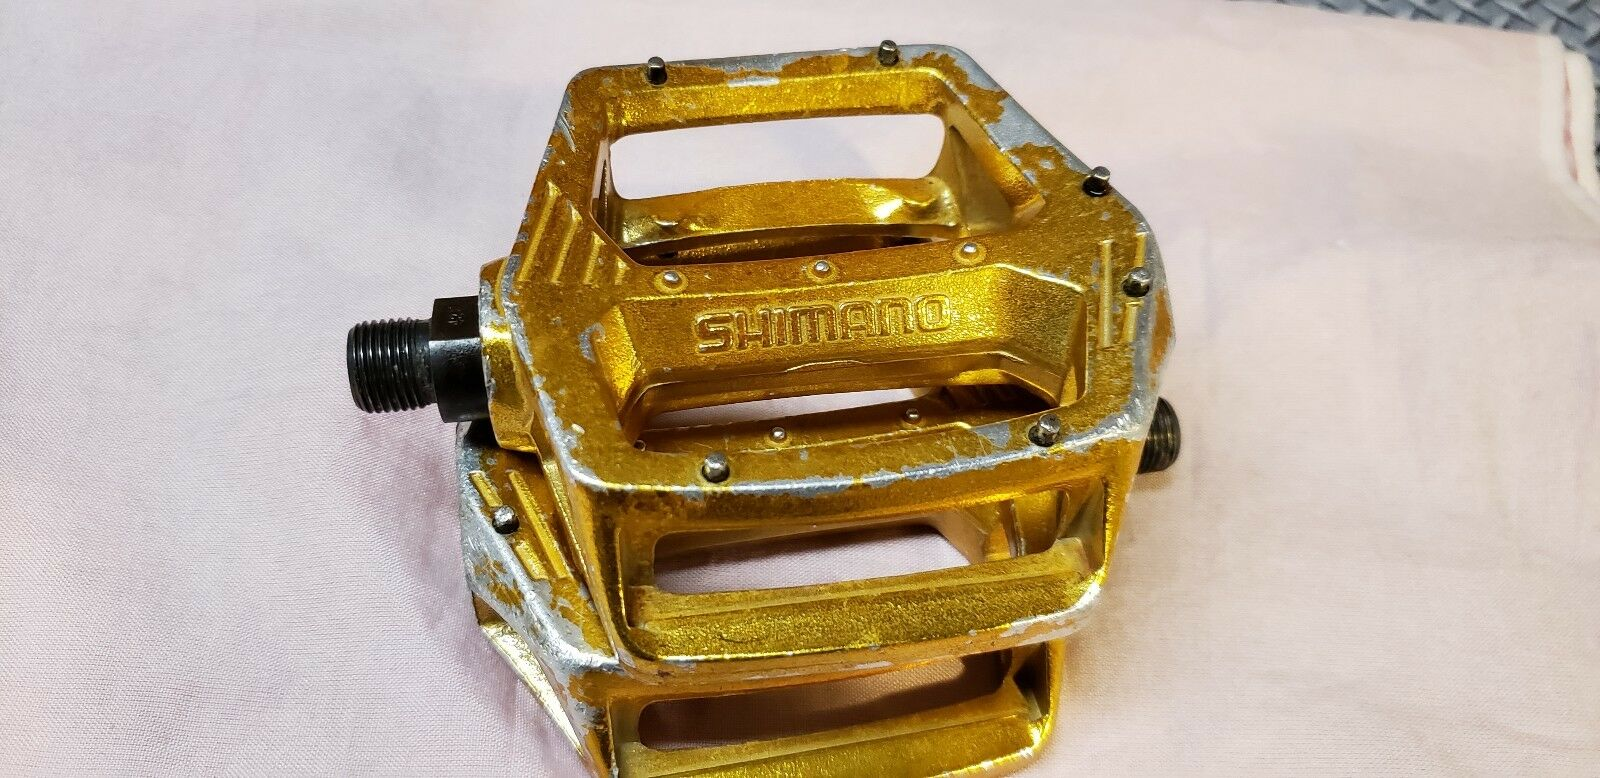 Old Bmx  gold Shimano dx 9 16  Pedals Pro Freestyle Bike 20  Performer Dyno Haro  unique shape